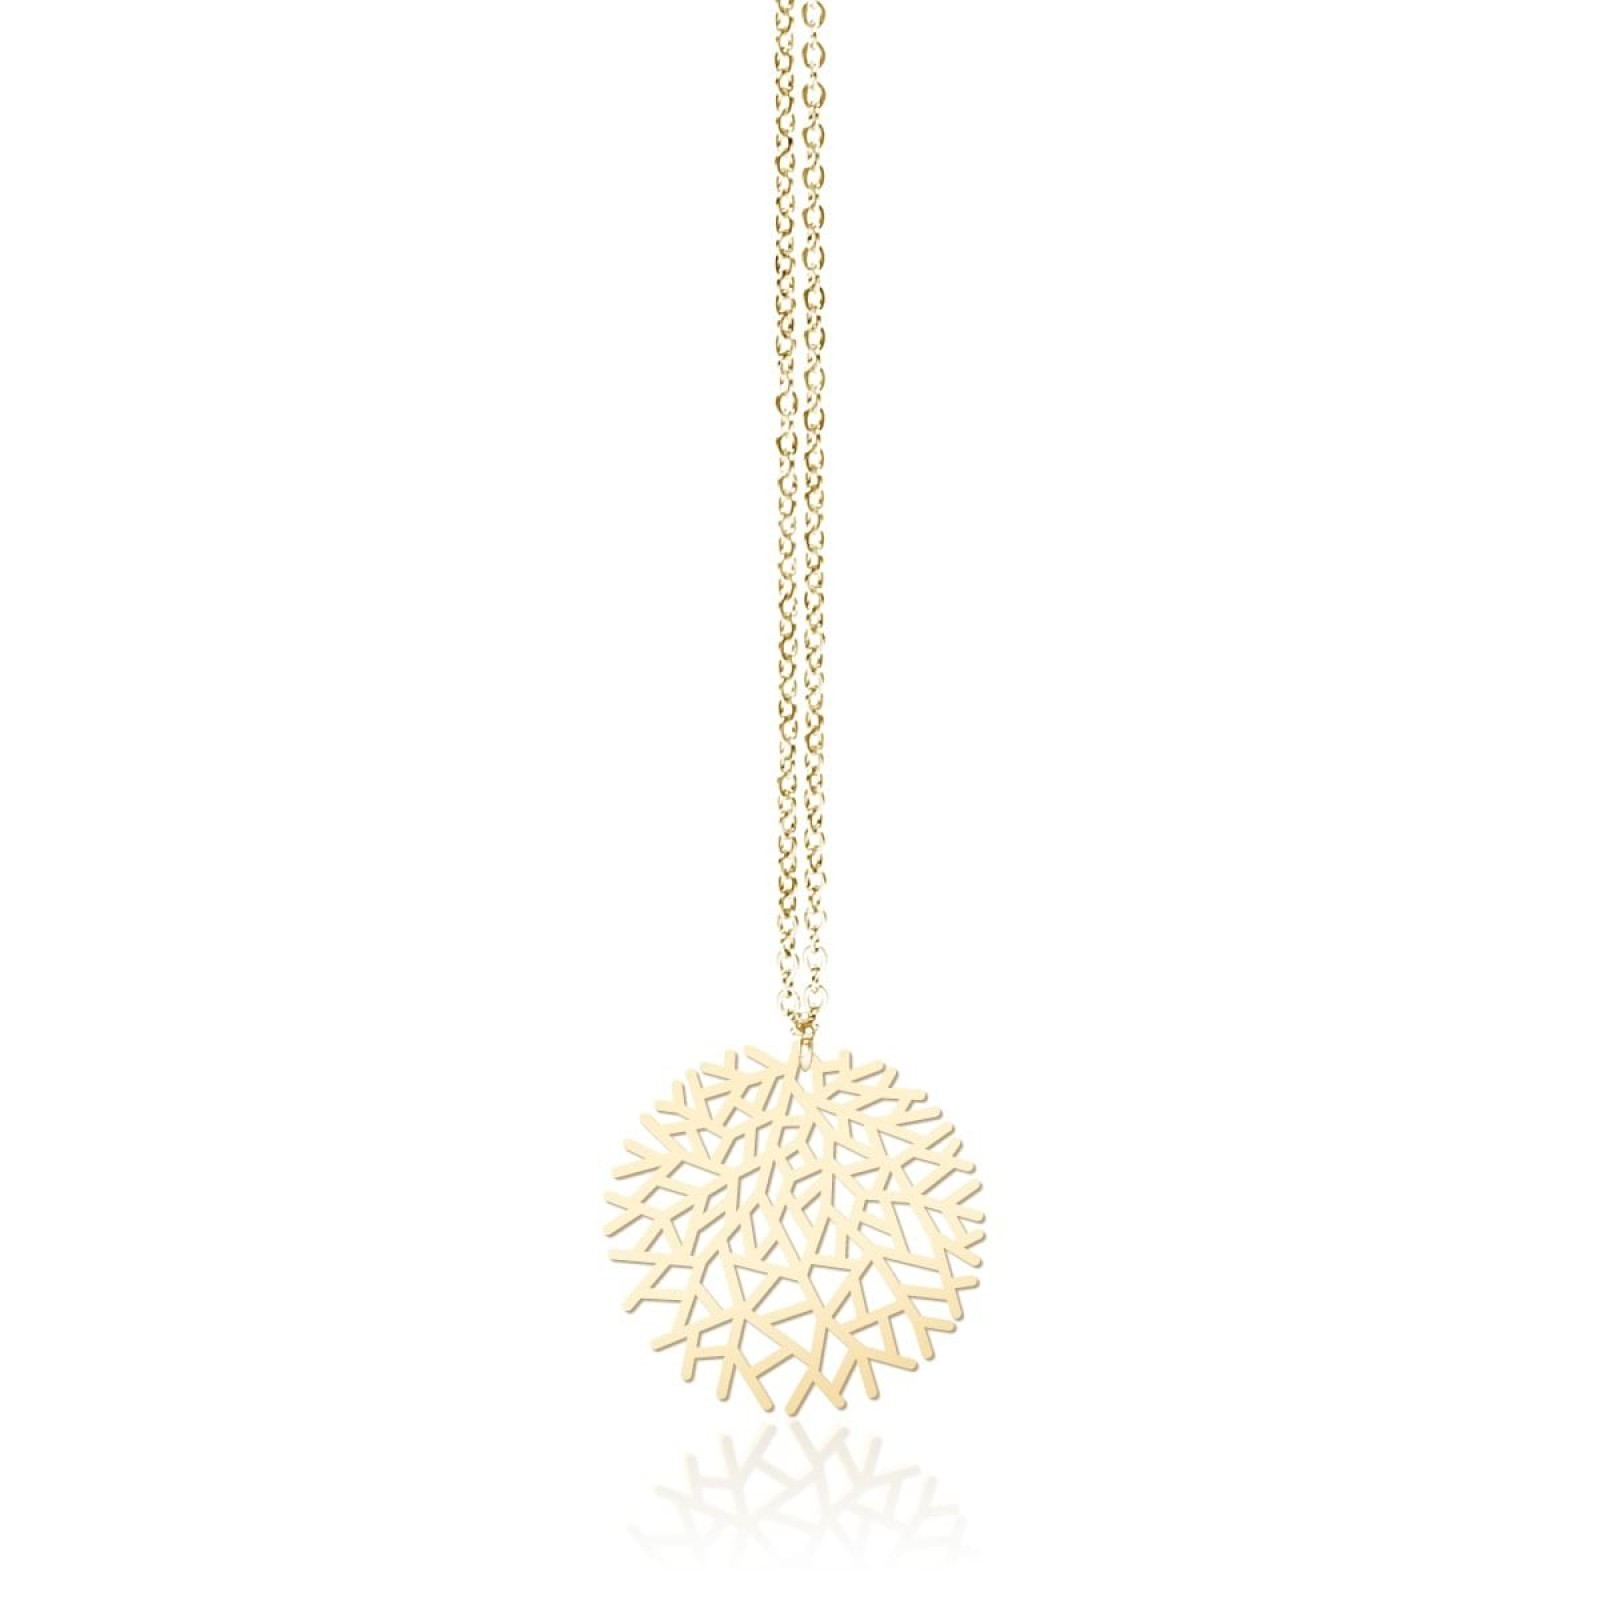 Woods XS Pendant (Gold) - Moorigin